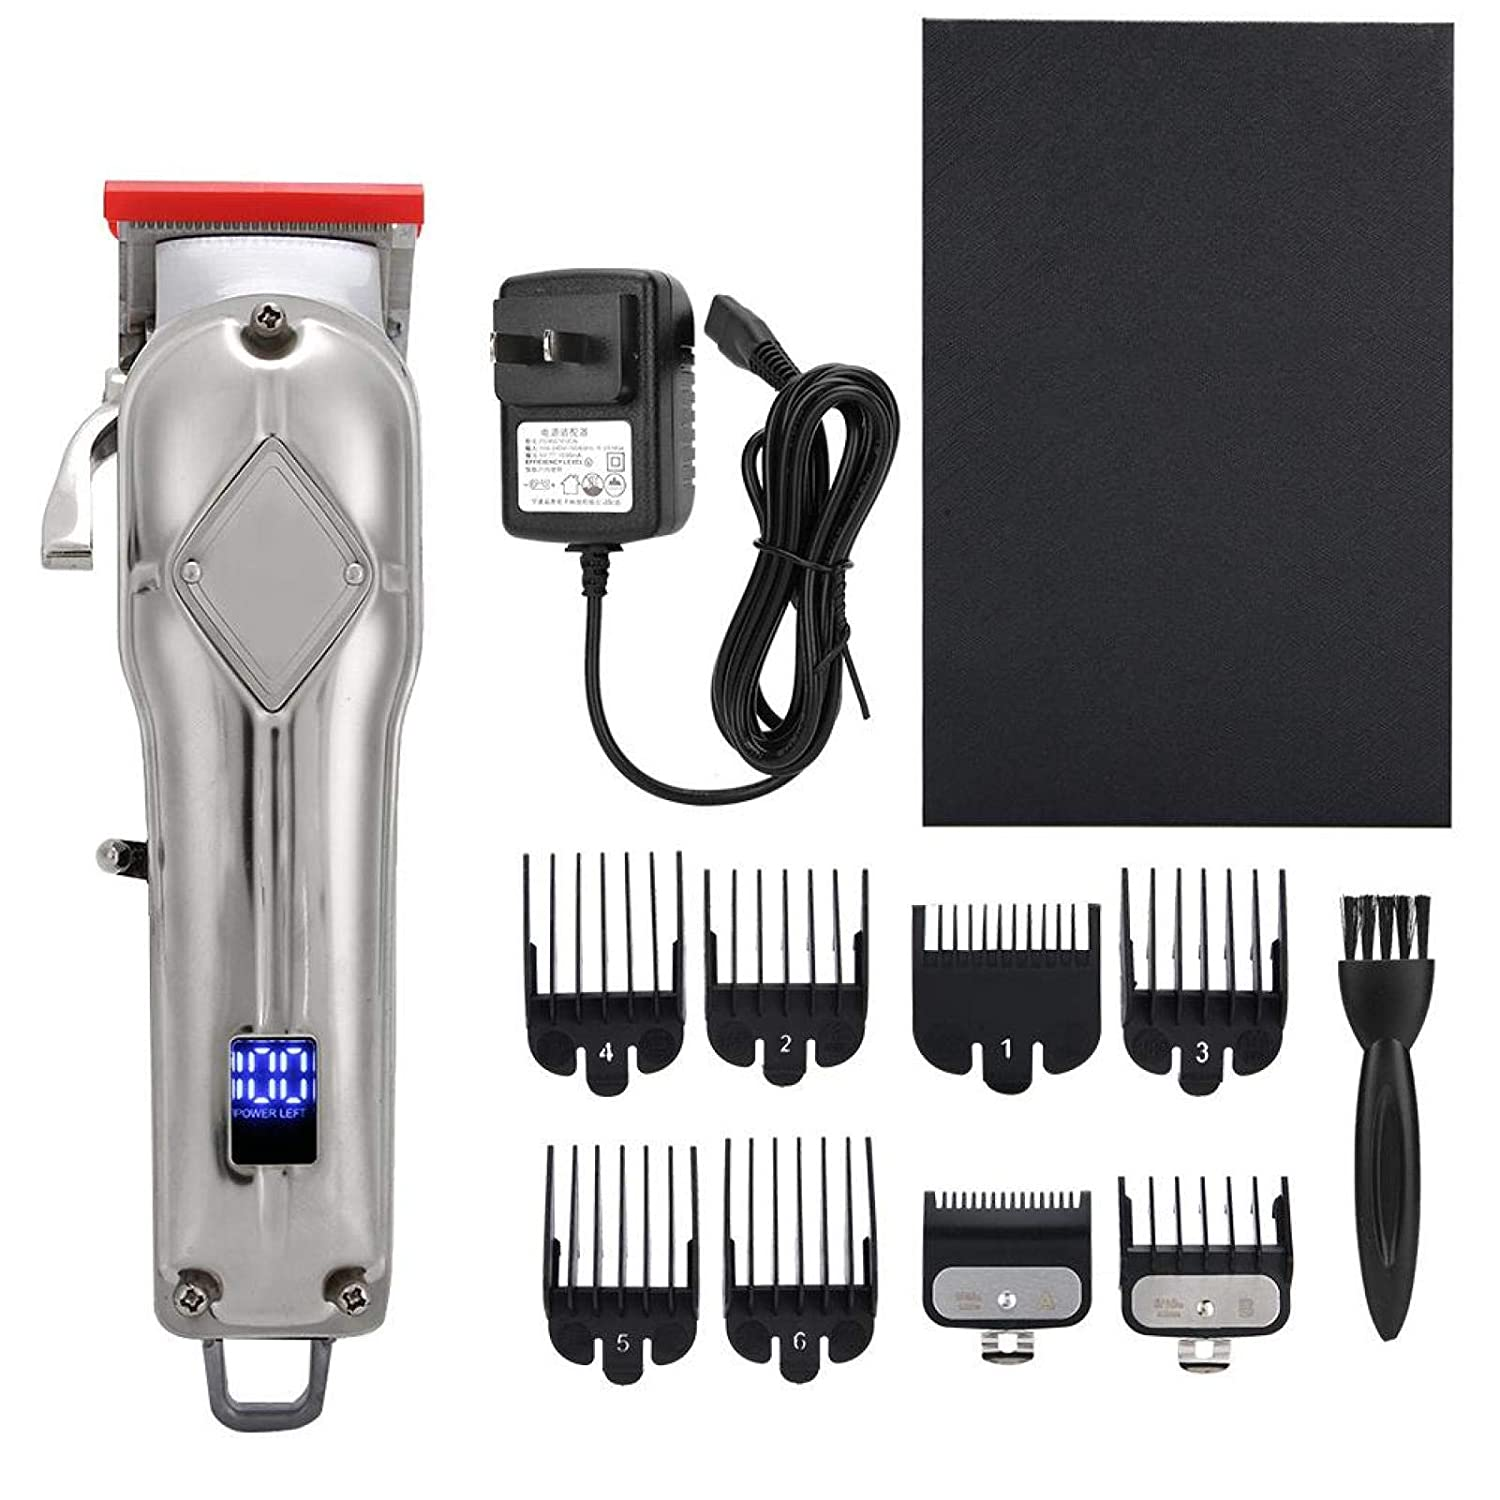 Electric Haircut Kit Rechargeable Max 67% OFF Sale SALE% OFF Practica Clipper Hair